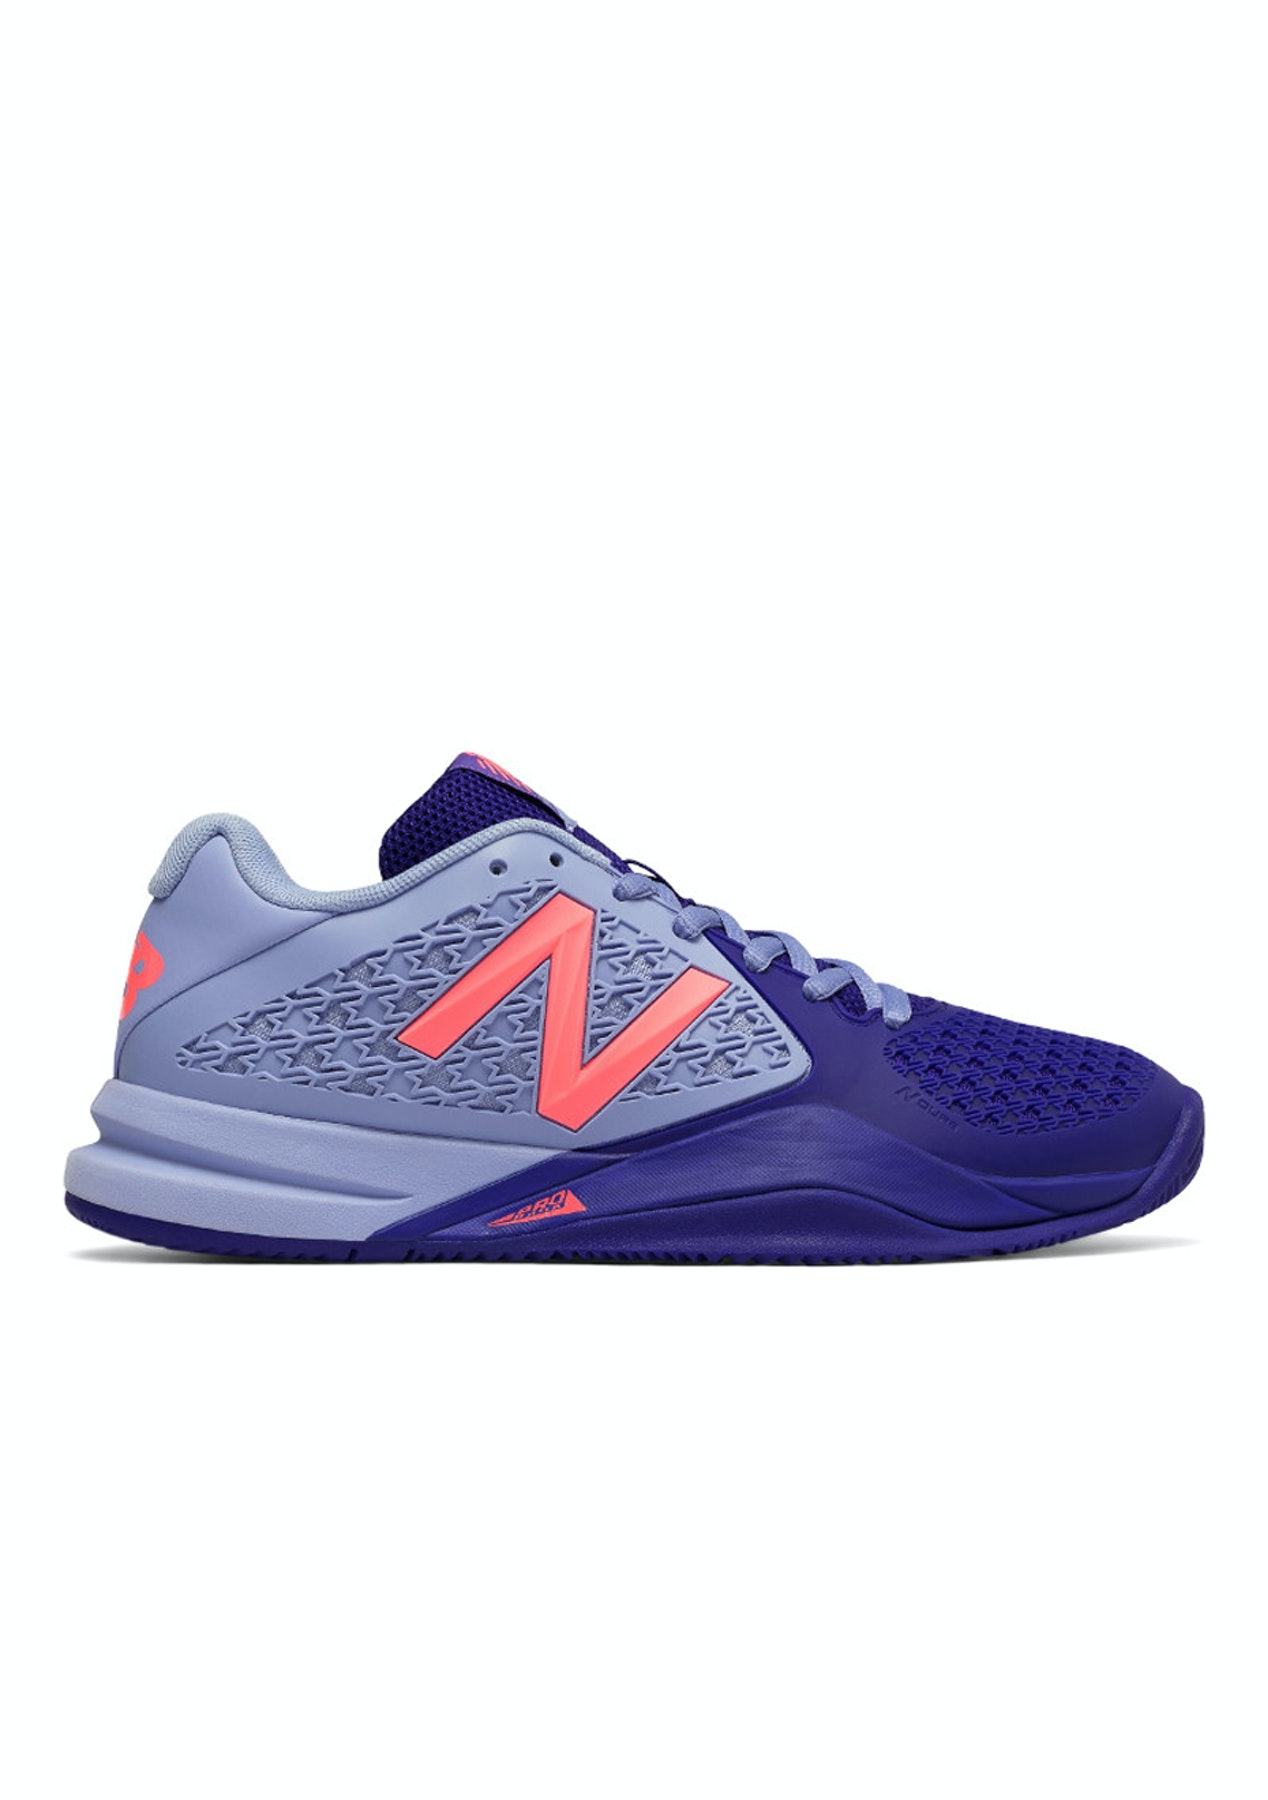 best sneakers d336e 2abe3 New Balance Womens - WC996SB2 - Purple - 50% off New Balance Performance -  Onceit